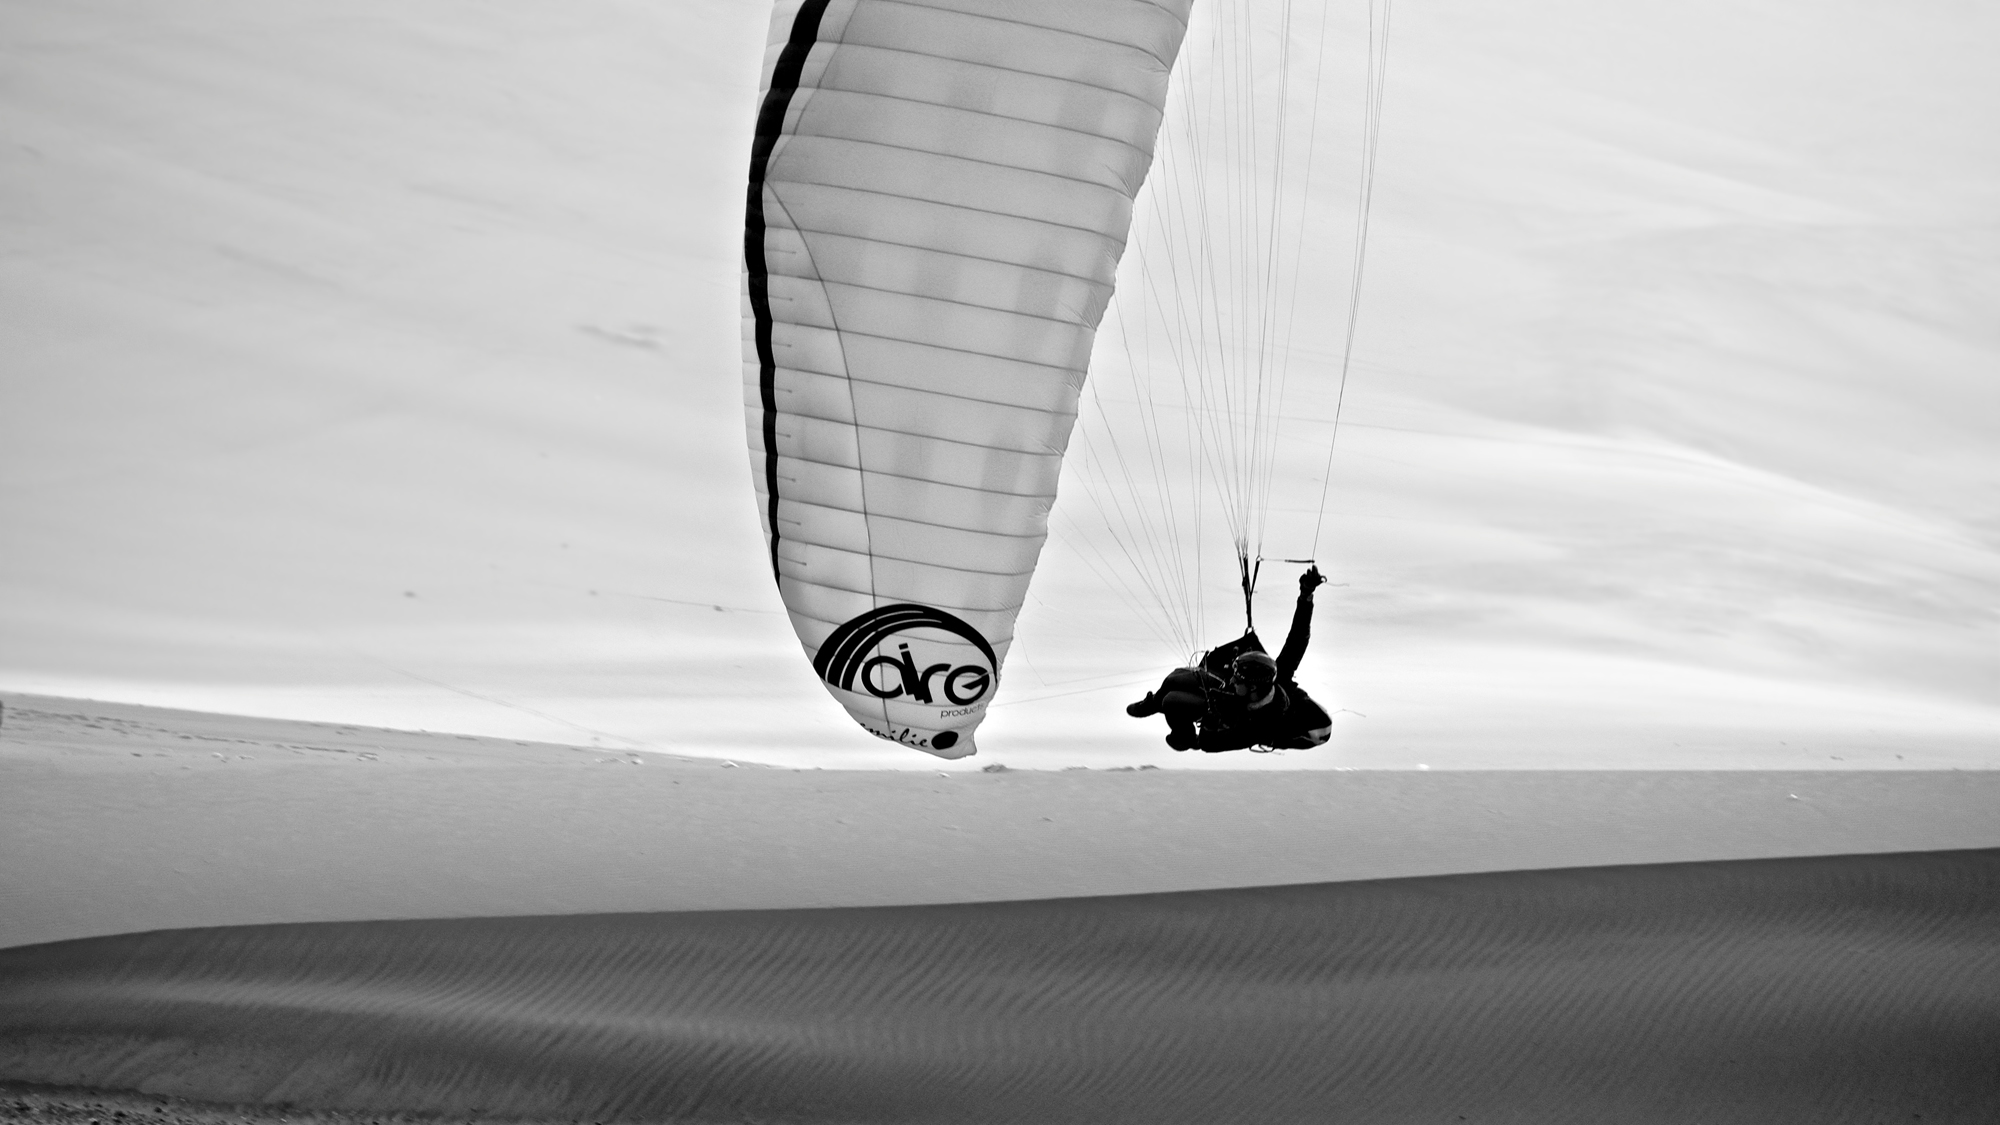 Ivan Purcell Chile paragliding 210